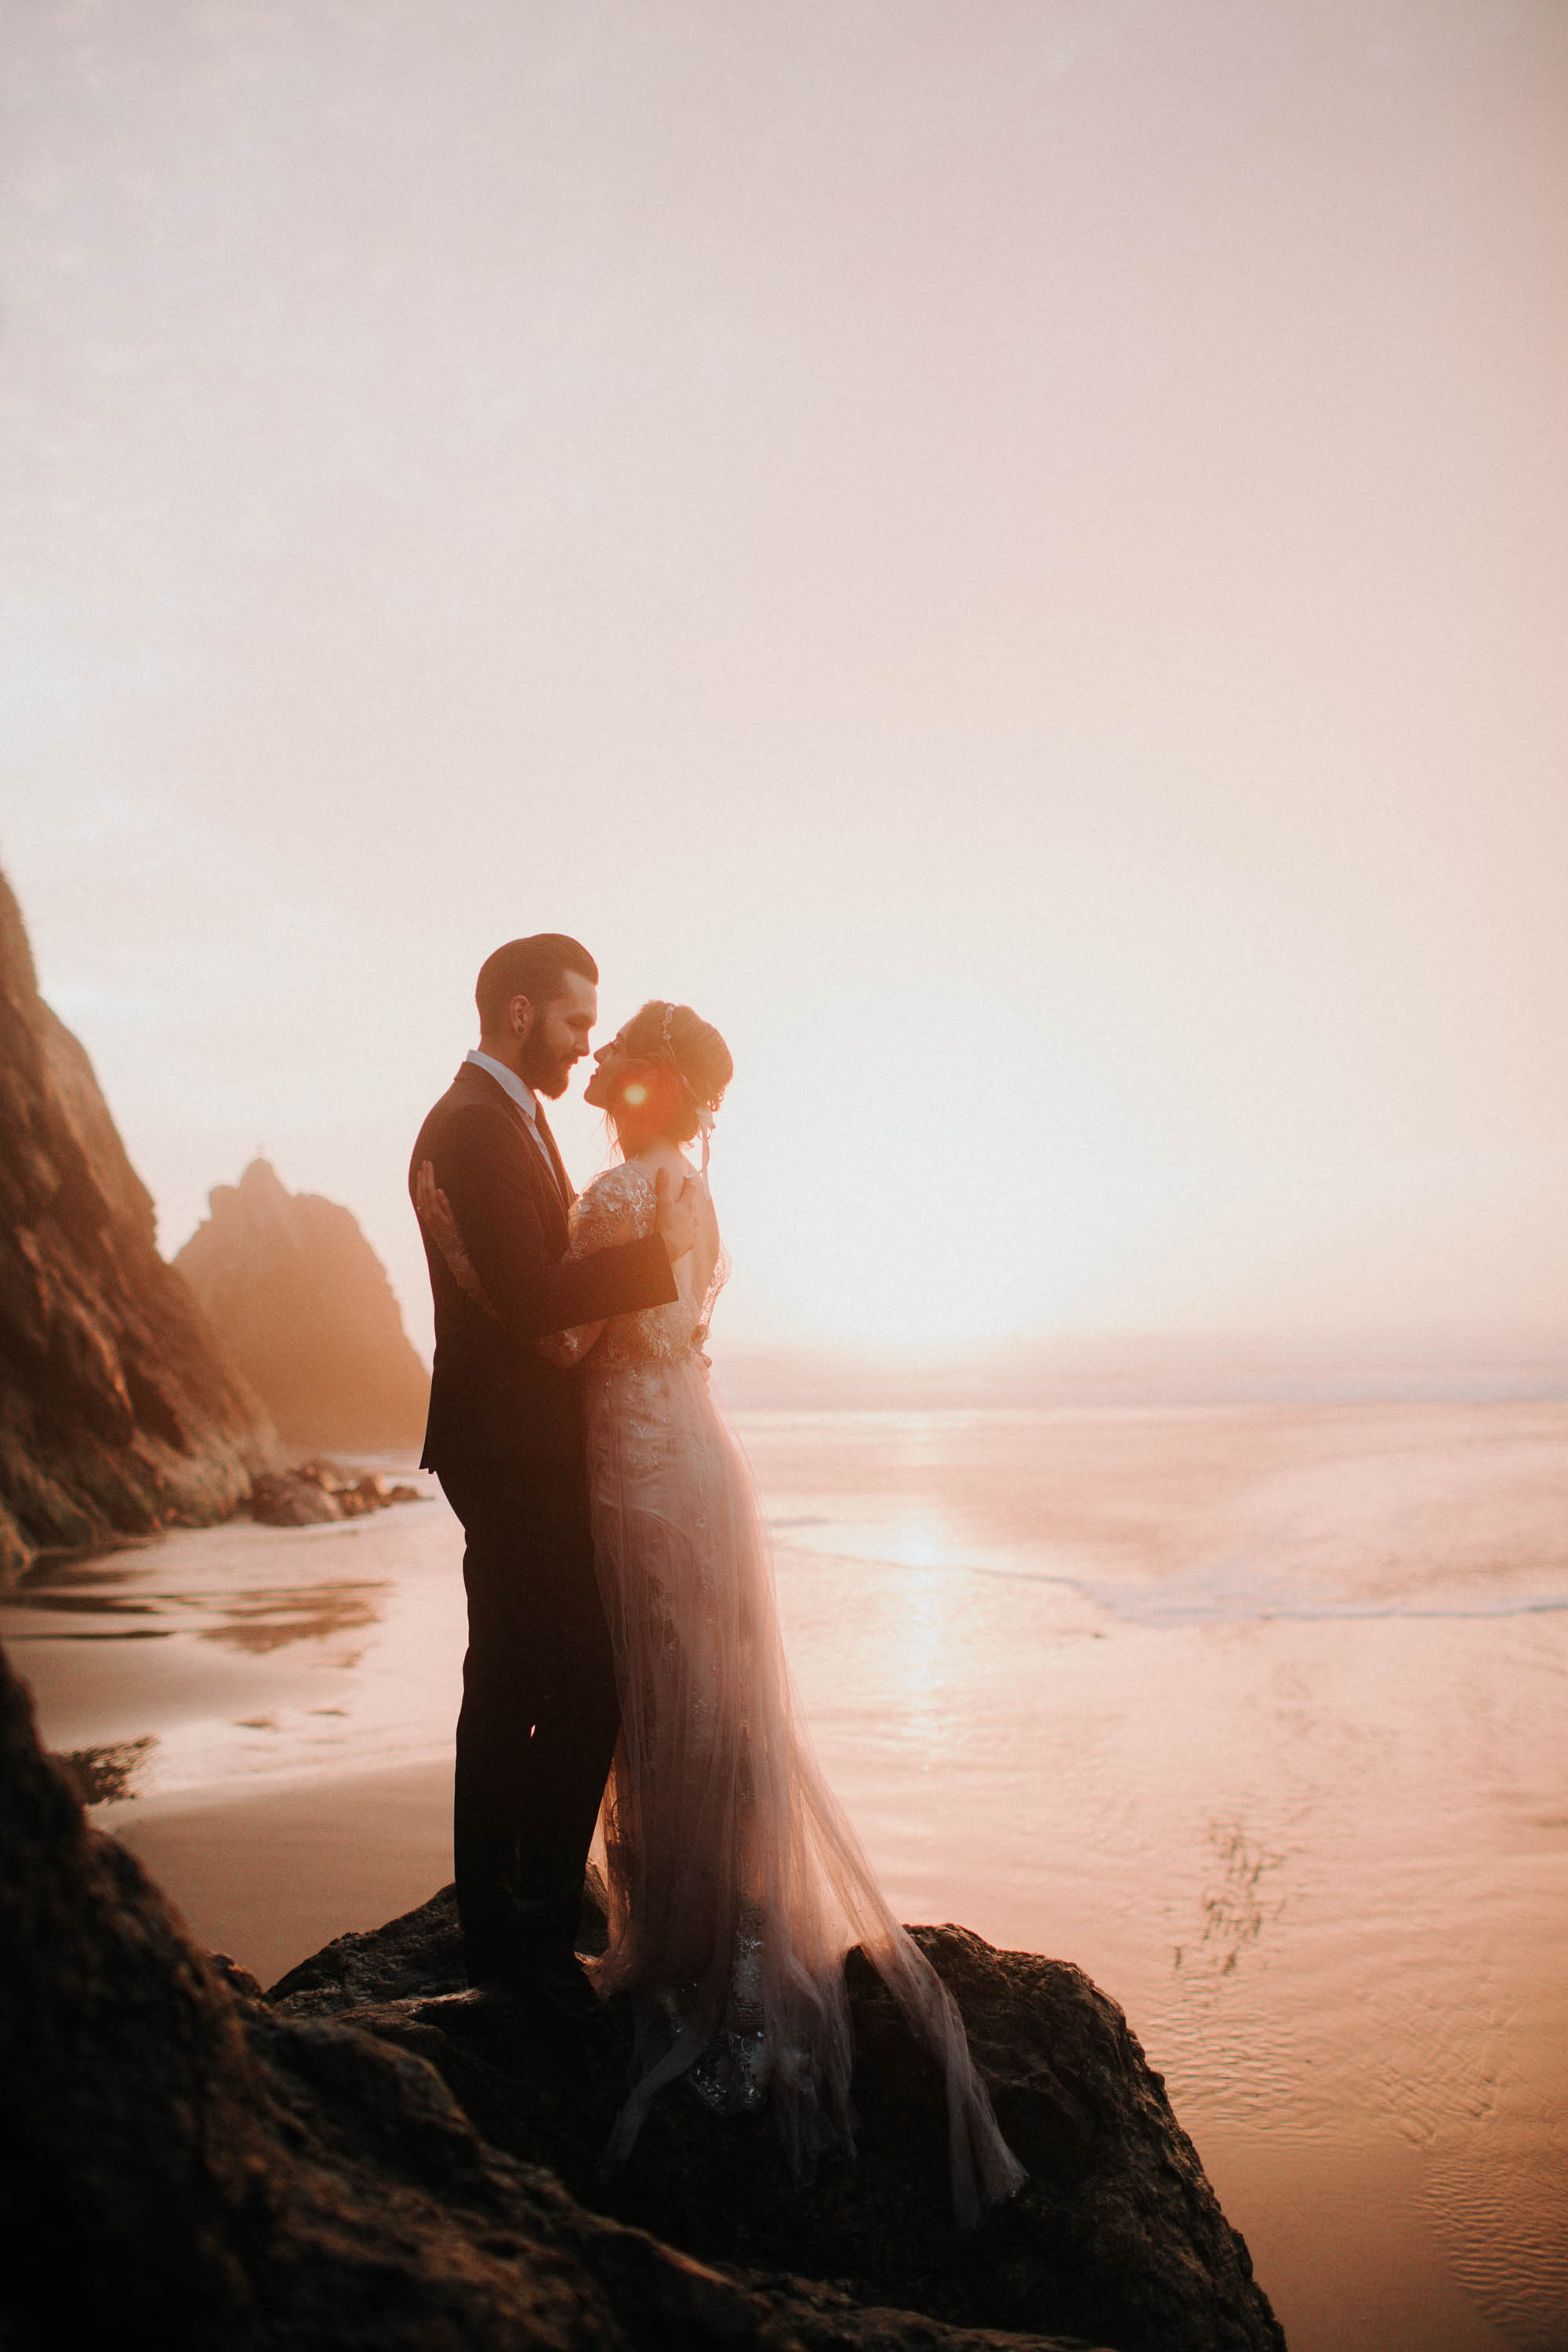 canonbeach_elopment_weddingphotographer-114.jpg